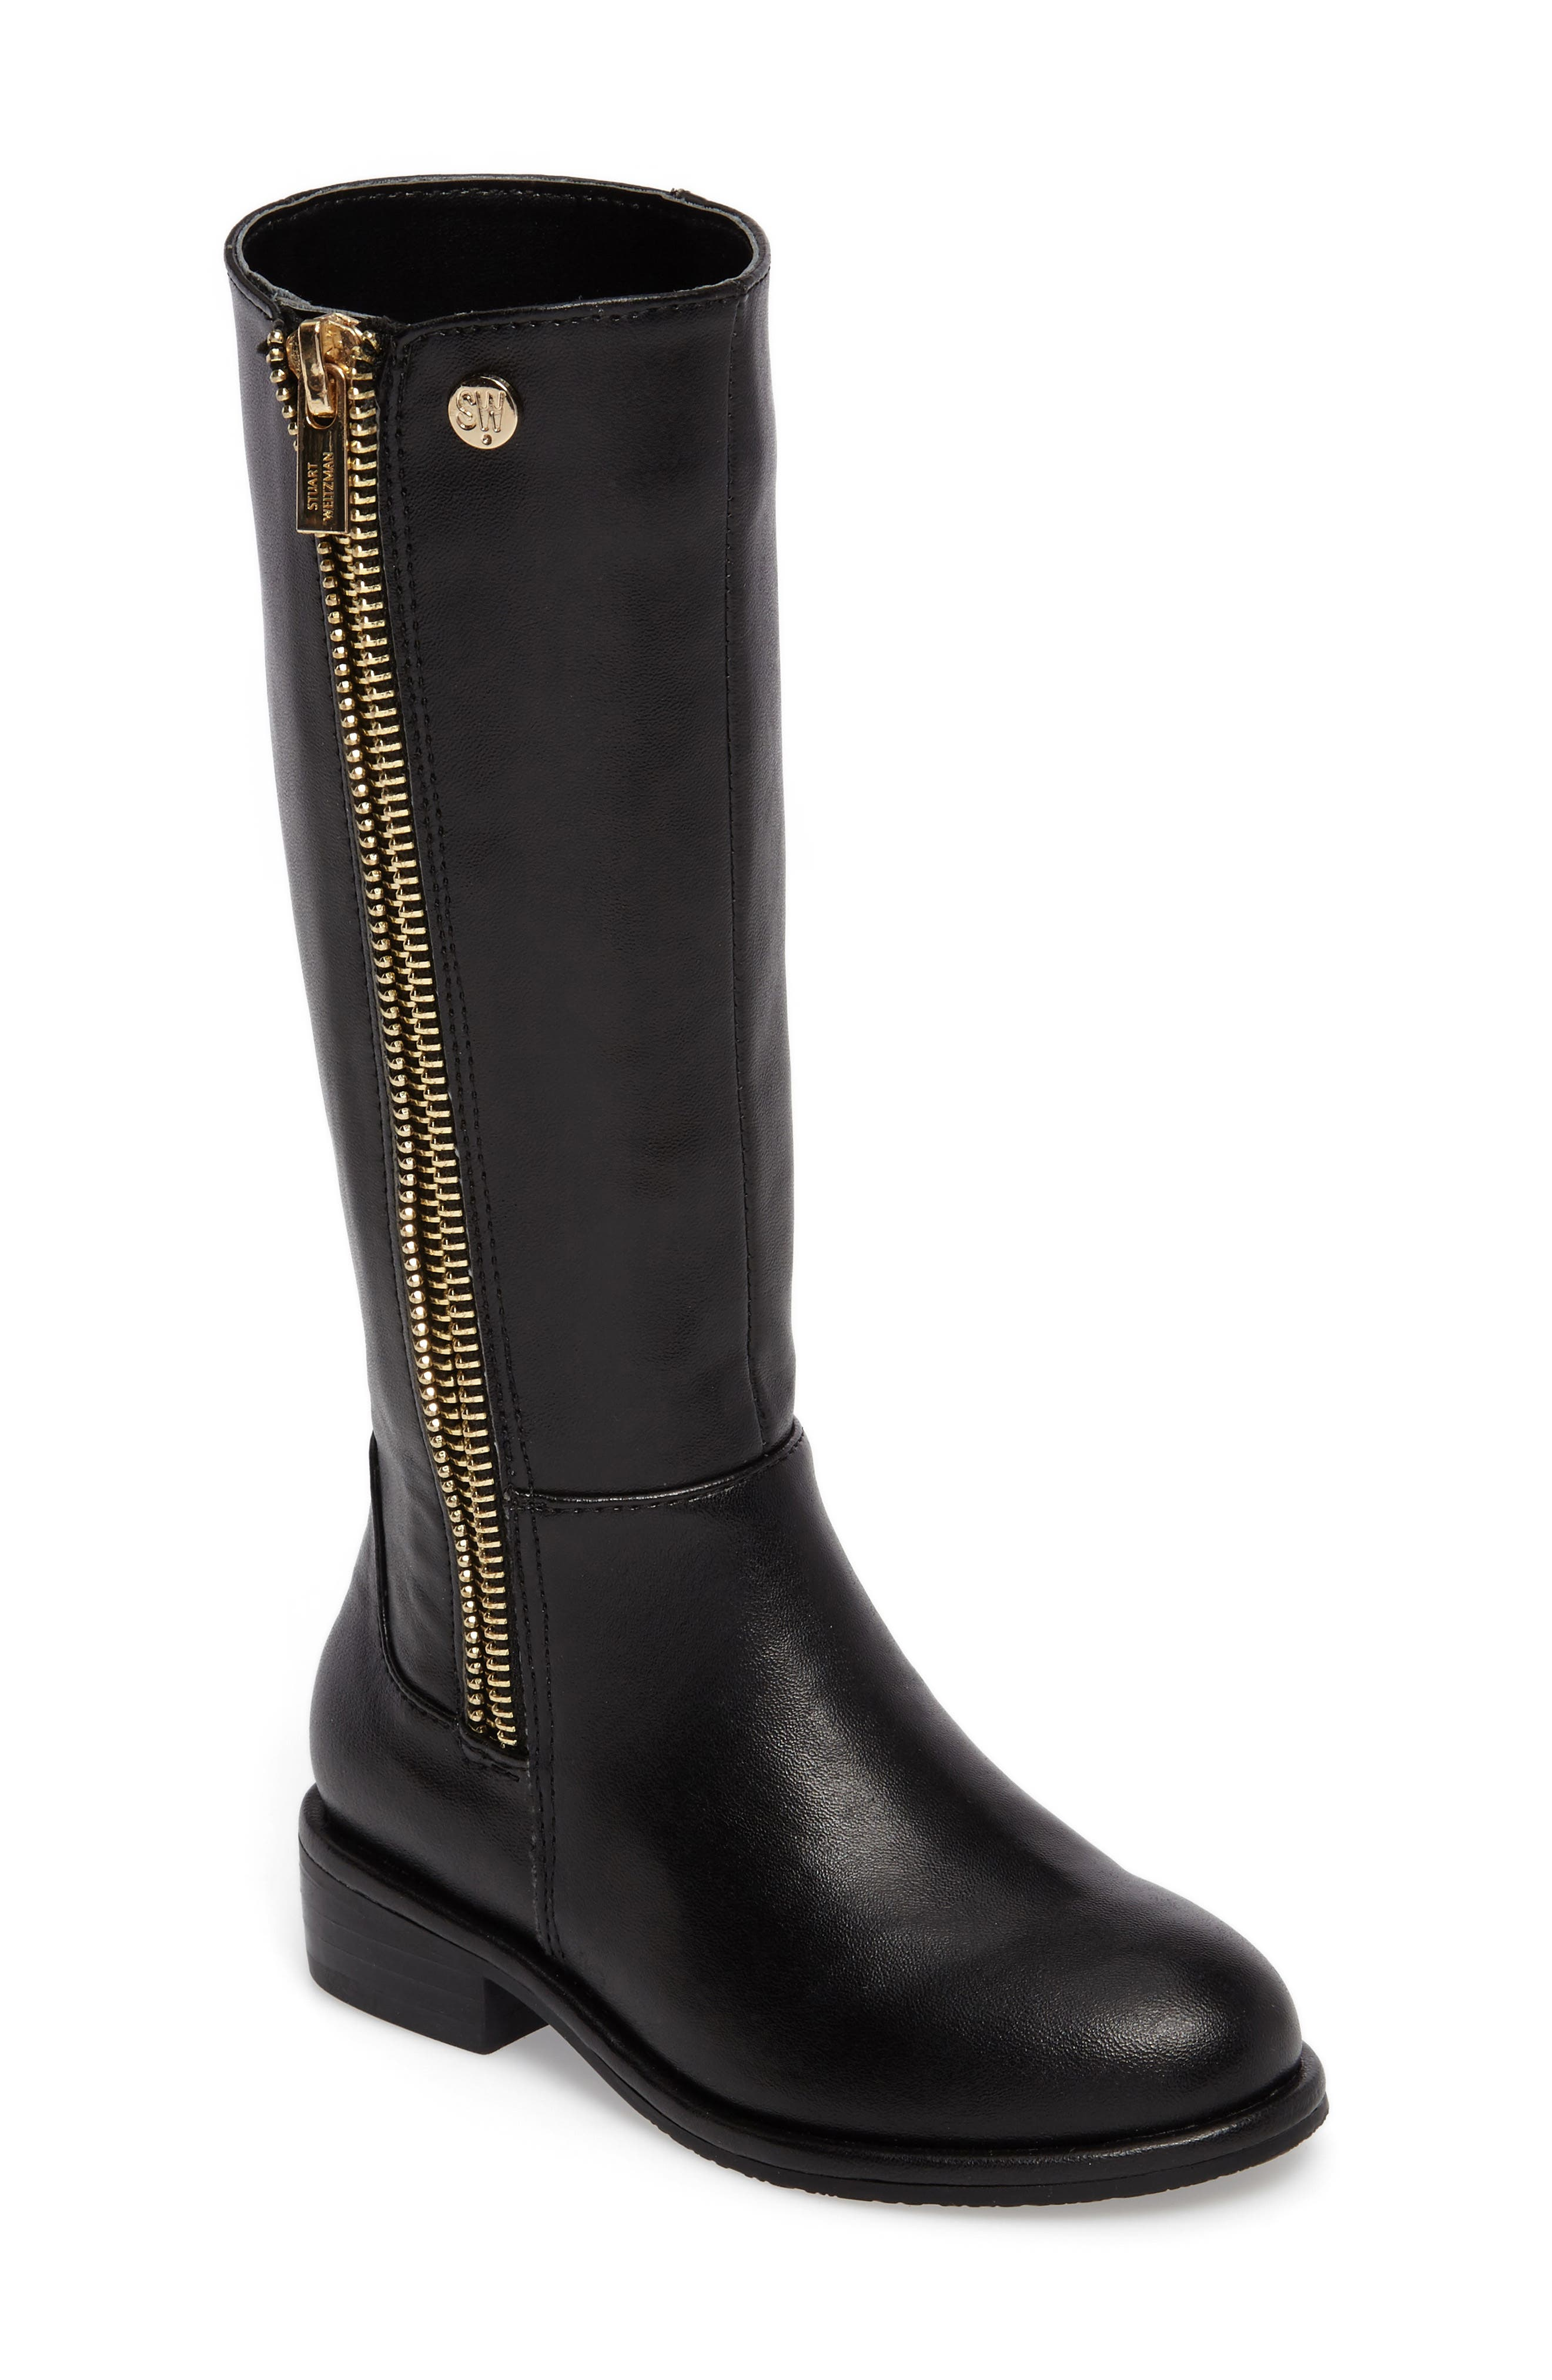 Lowland Riding Boot,                         Main,                         color, Black Faux Leather